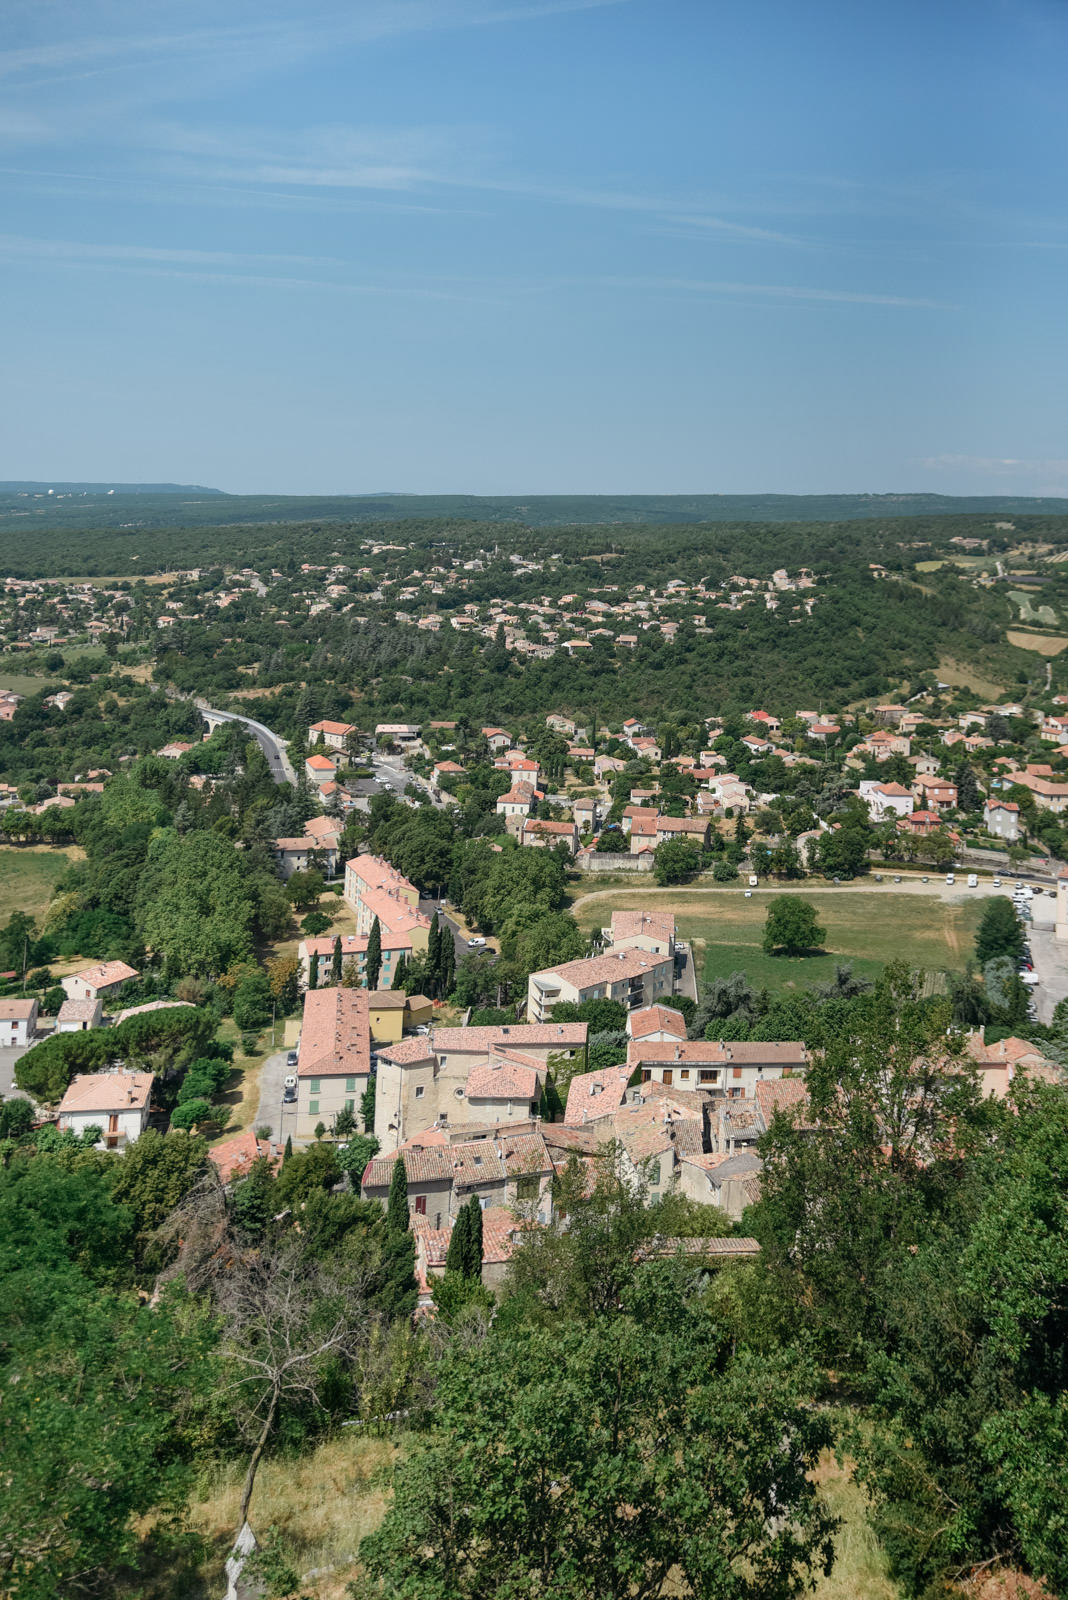 Blog-Mode-And-The-City-Lifestyle-Provence-Couvent-Minimes-Manosque-Fourcalquier-20